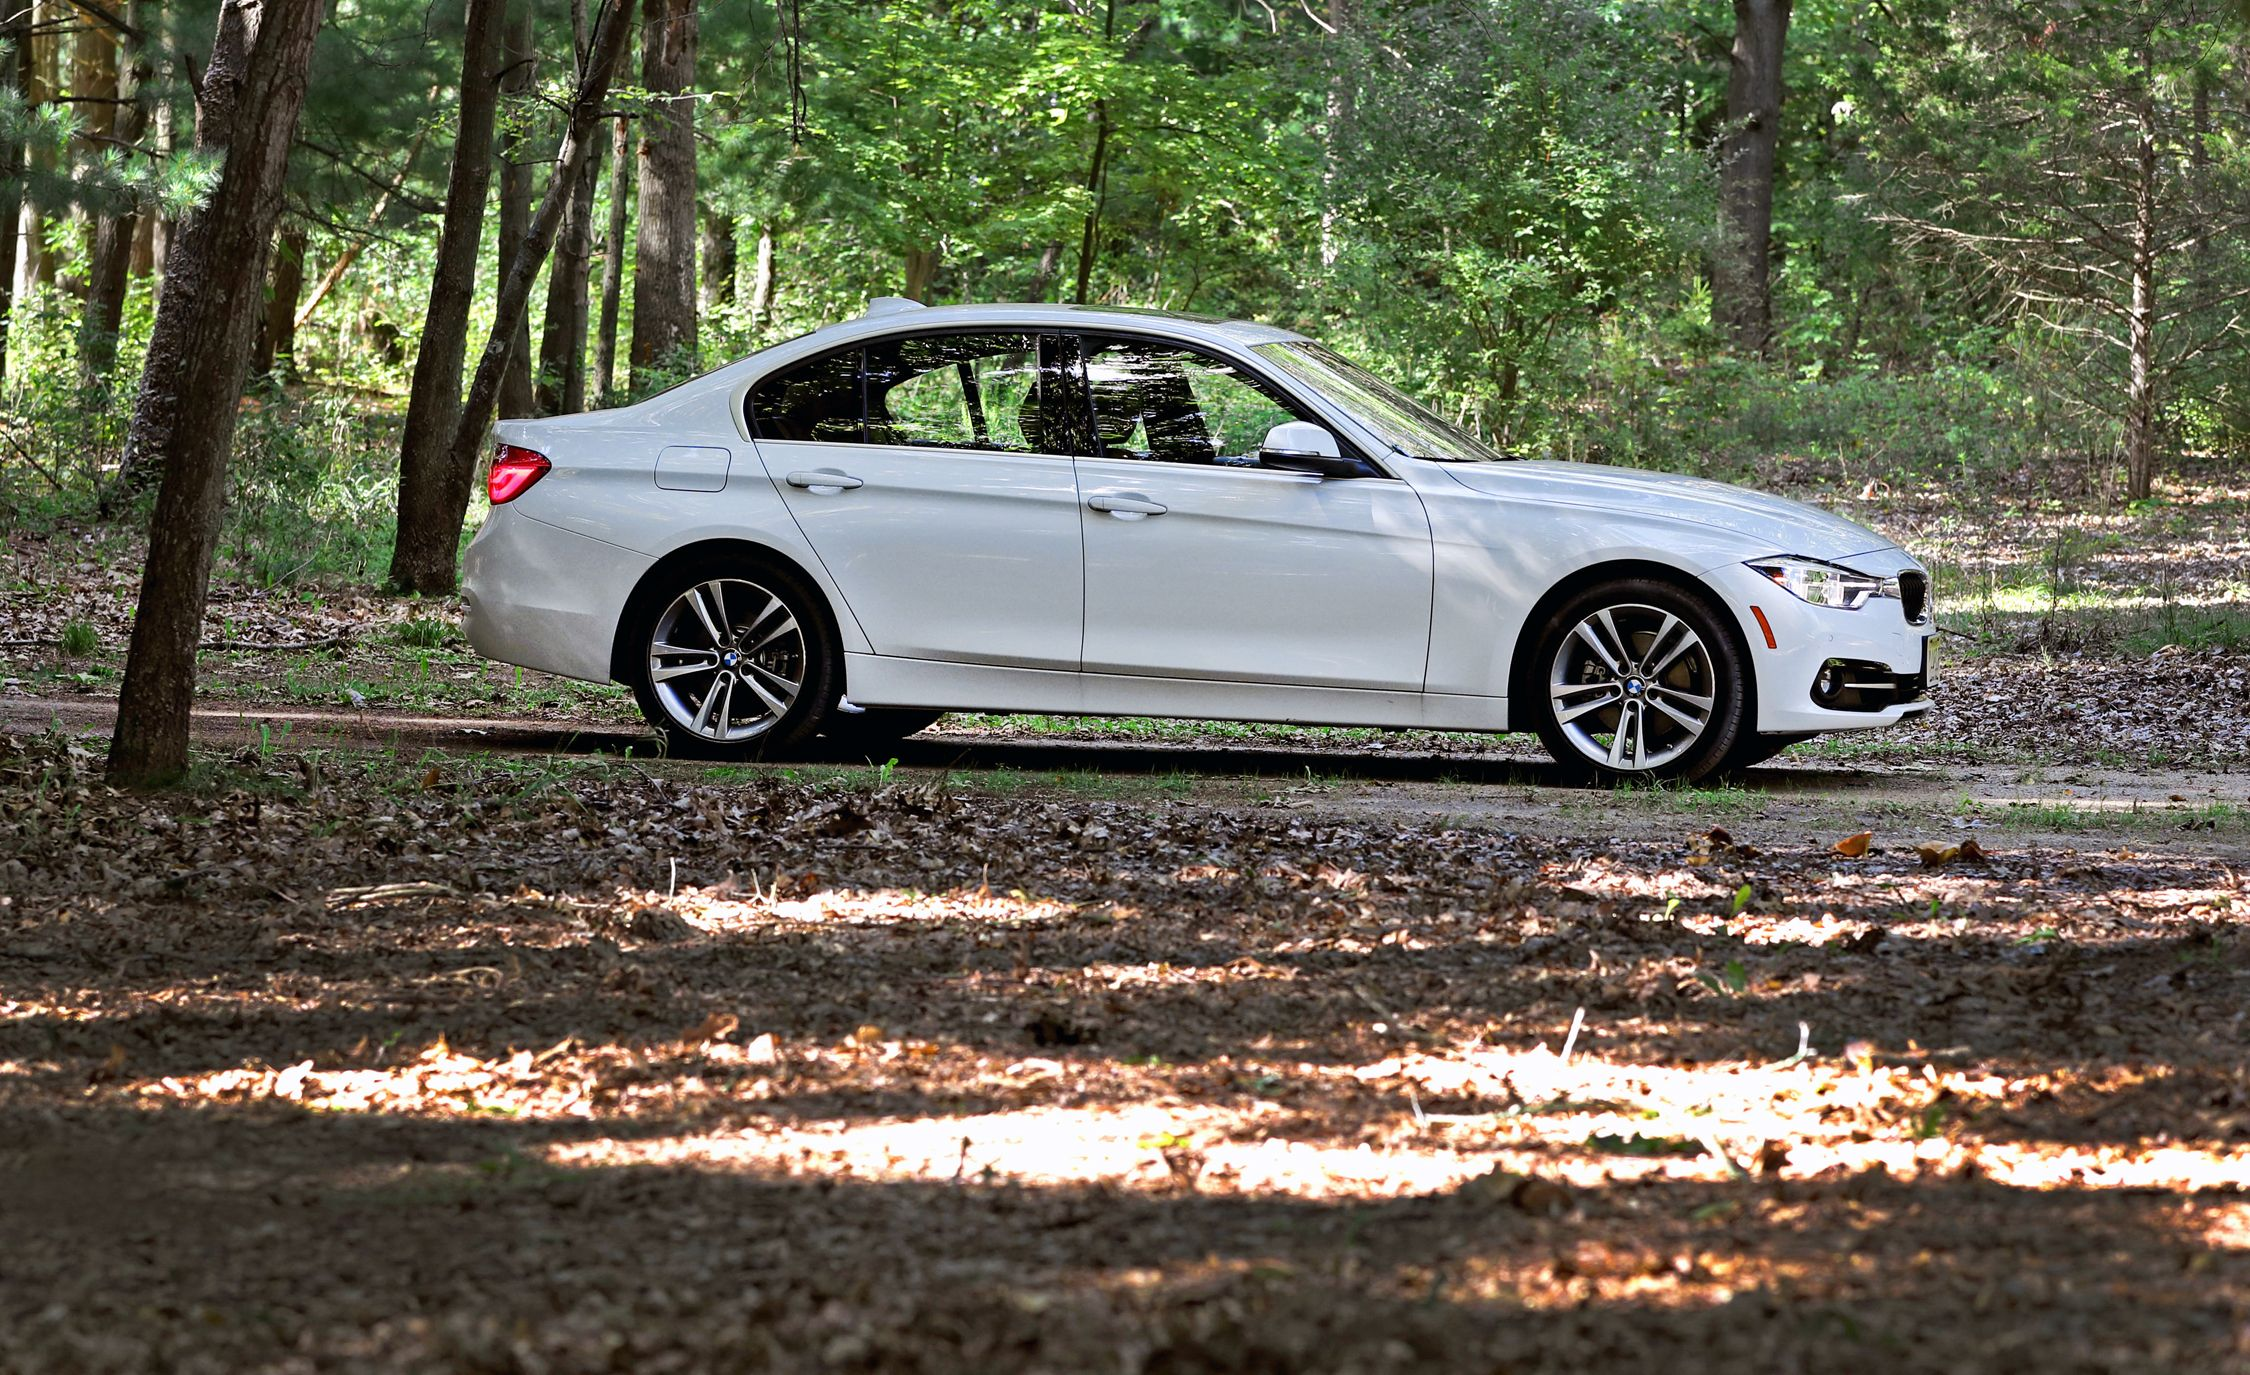 9. BMW 3-series Wait, why is BMW's 3-series so far back in these rankings? While the BMW has long been this segment's go-to pick, the current F30 generation has lost some of its previous luster.